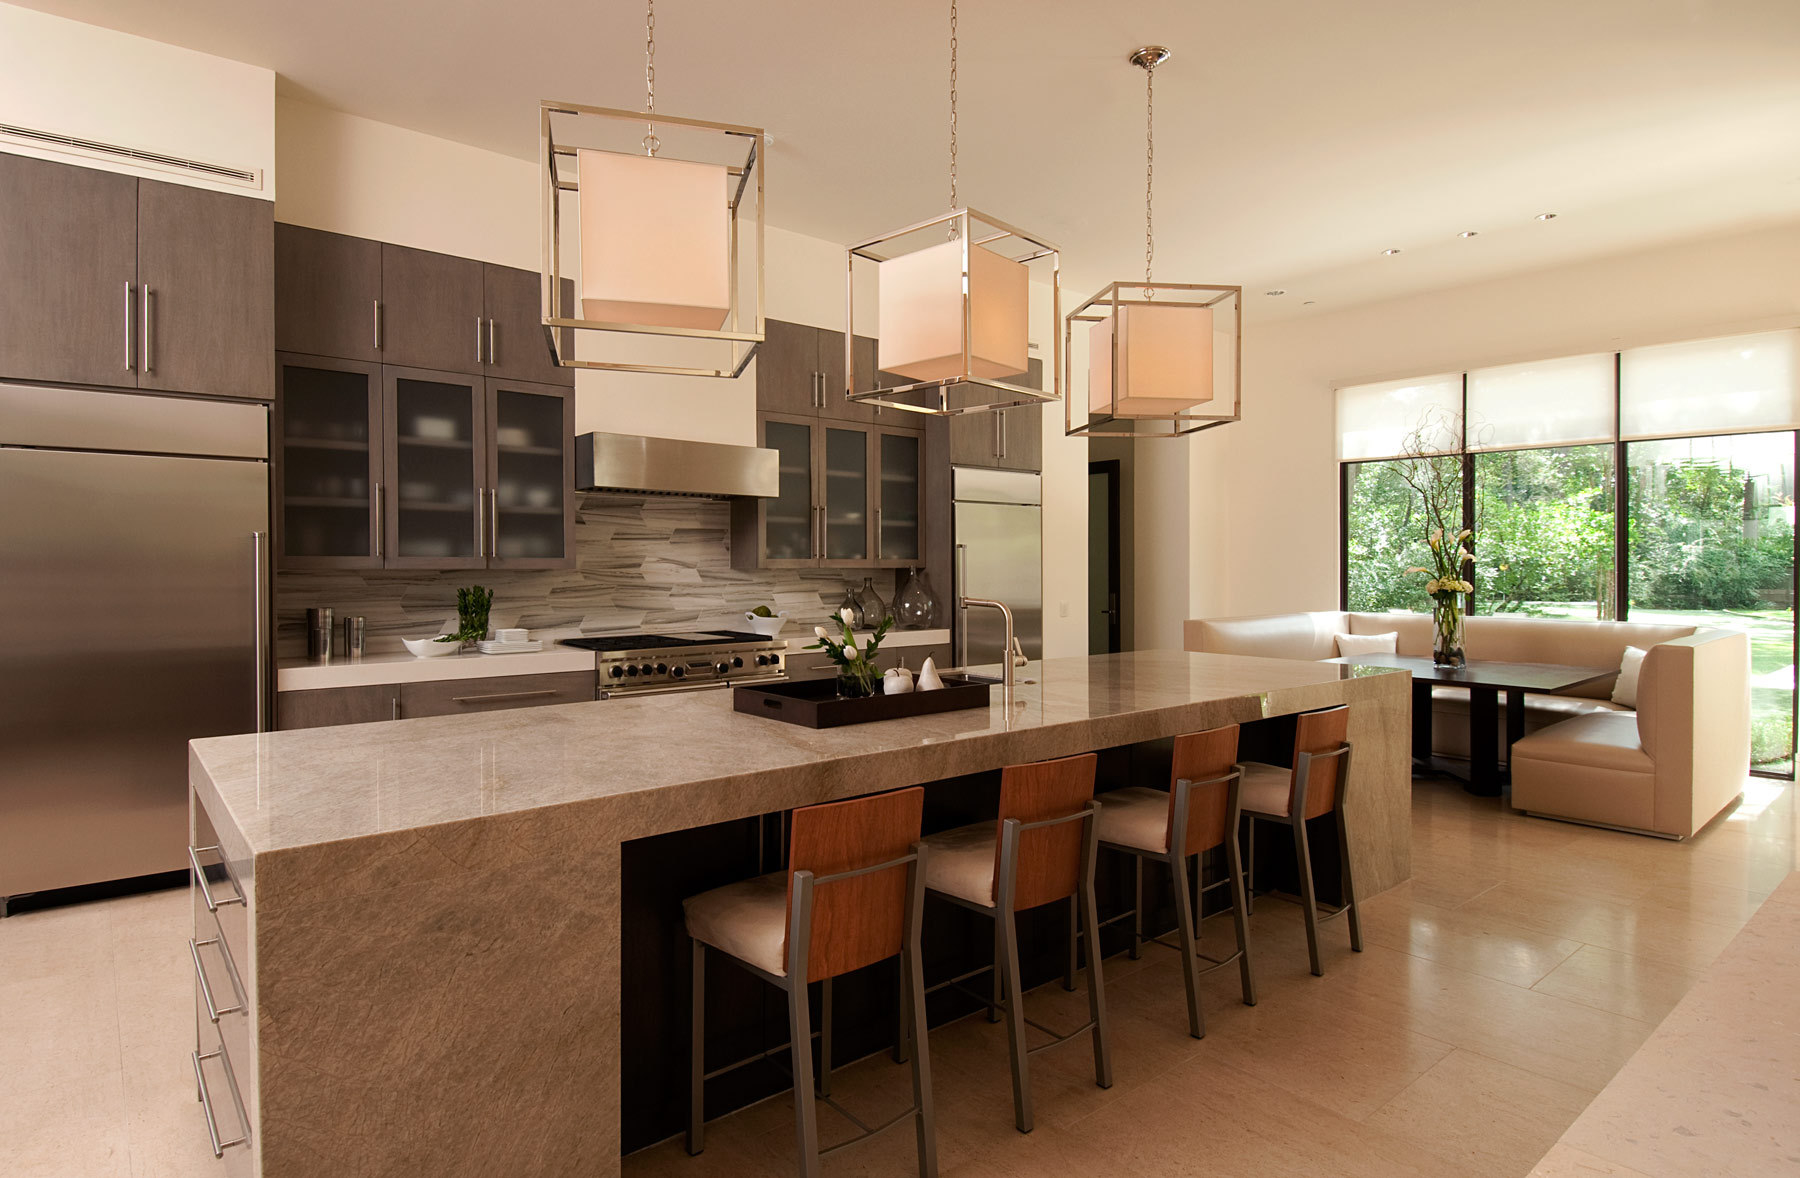 Featured Image of Innovative Modern American Kitchen Interior